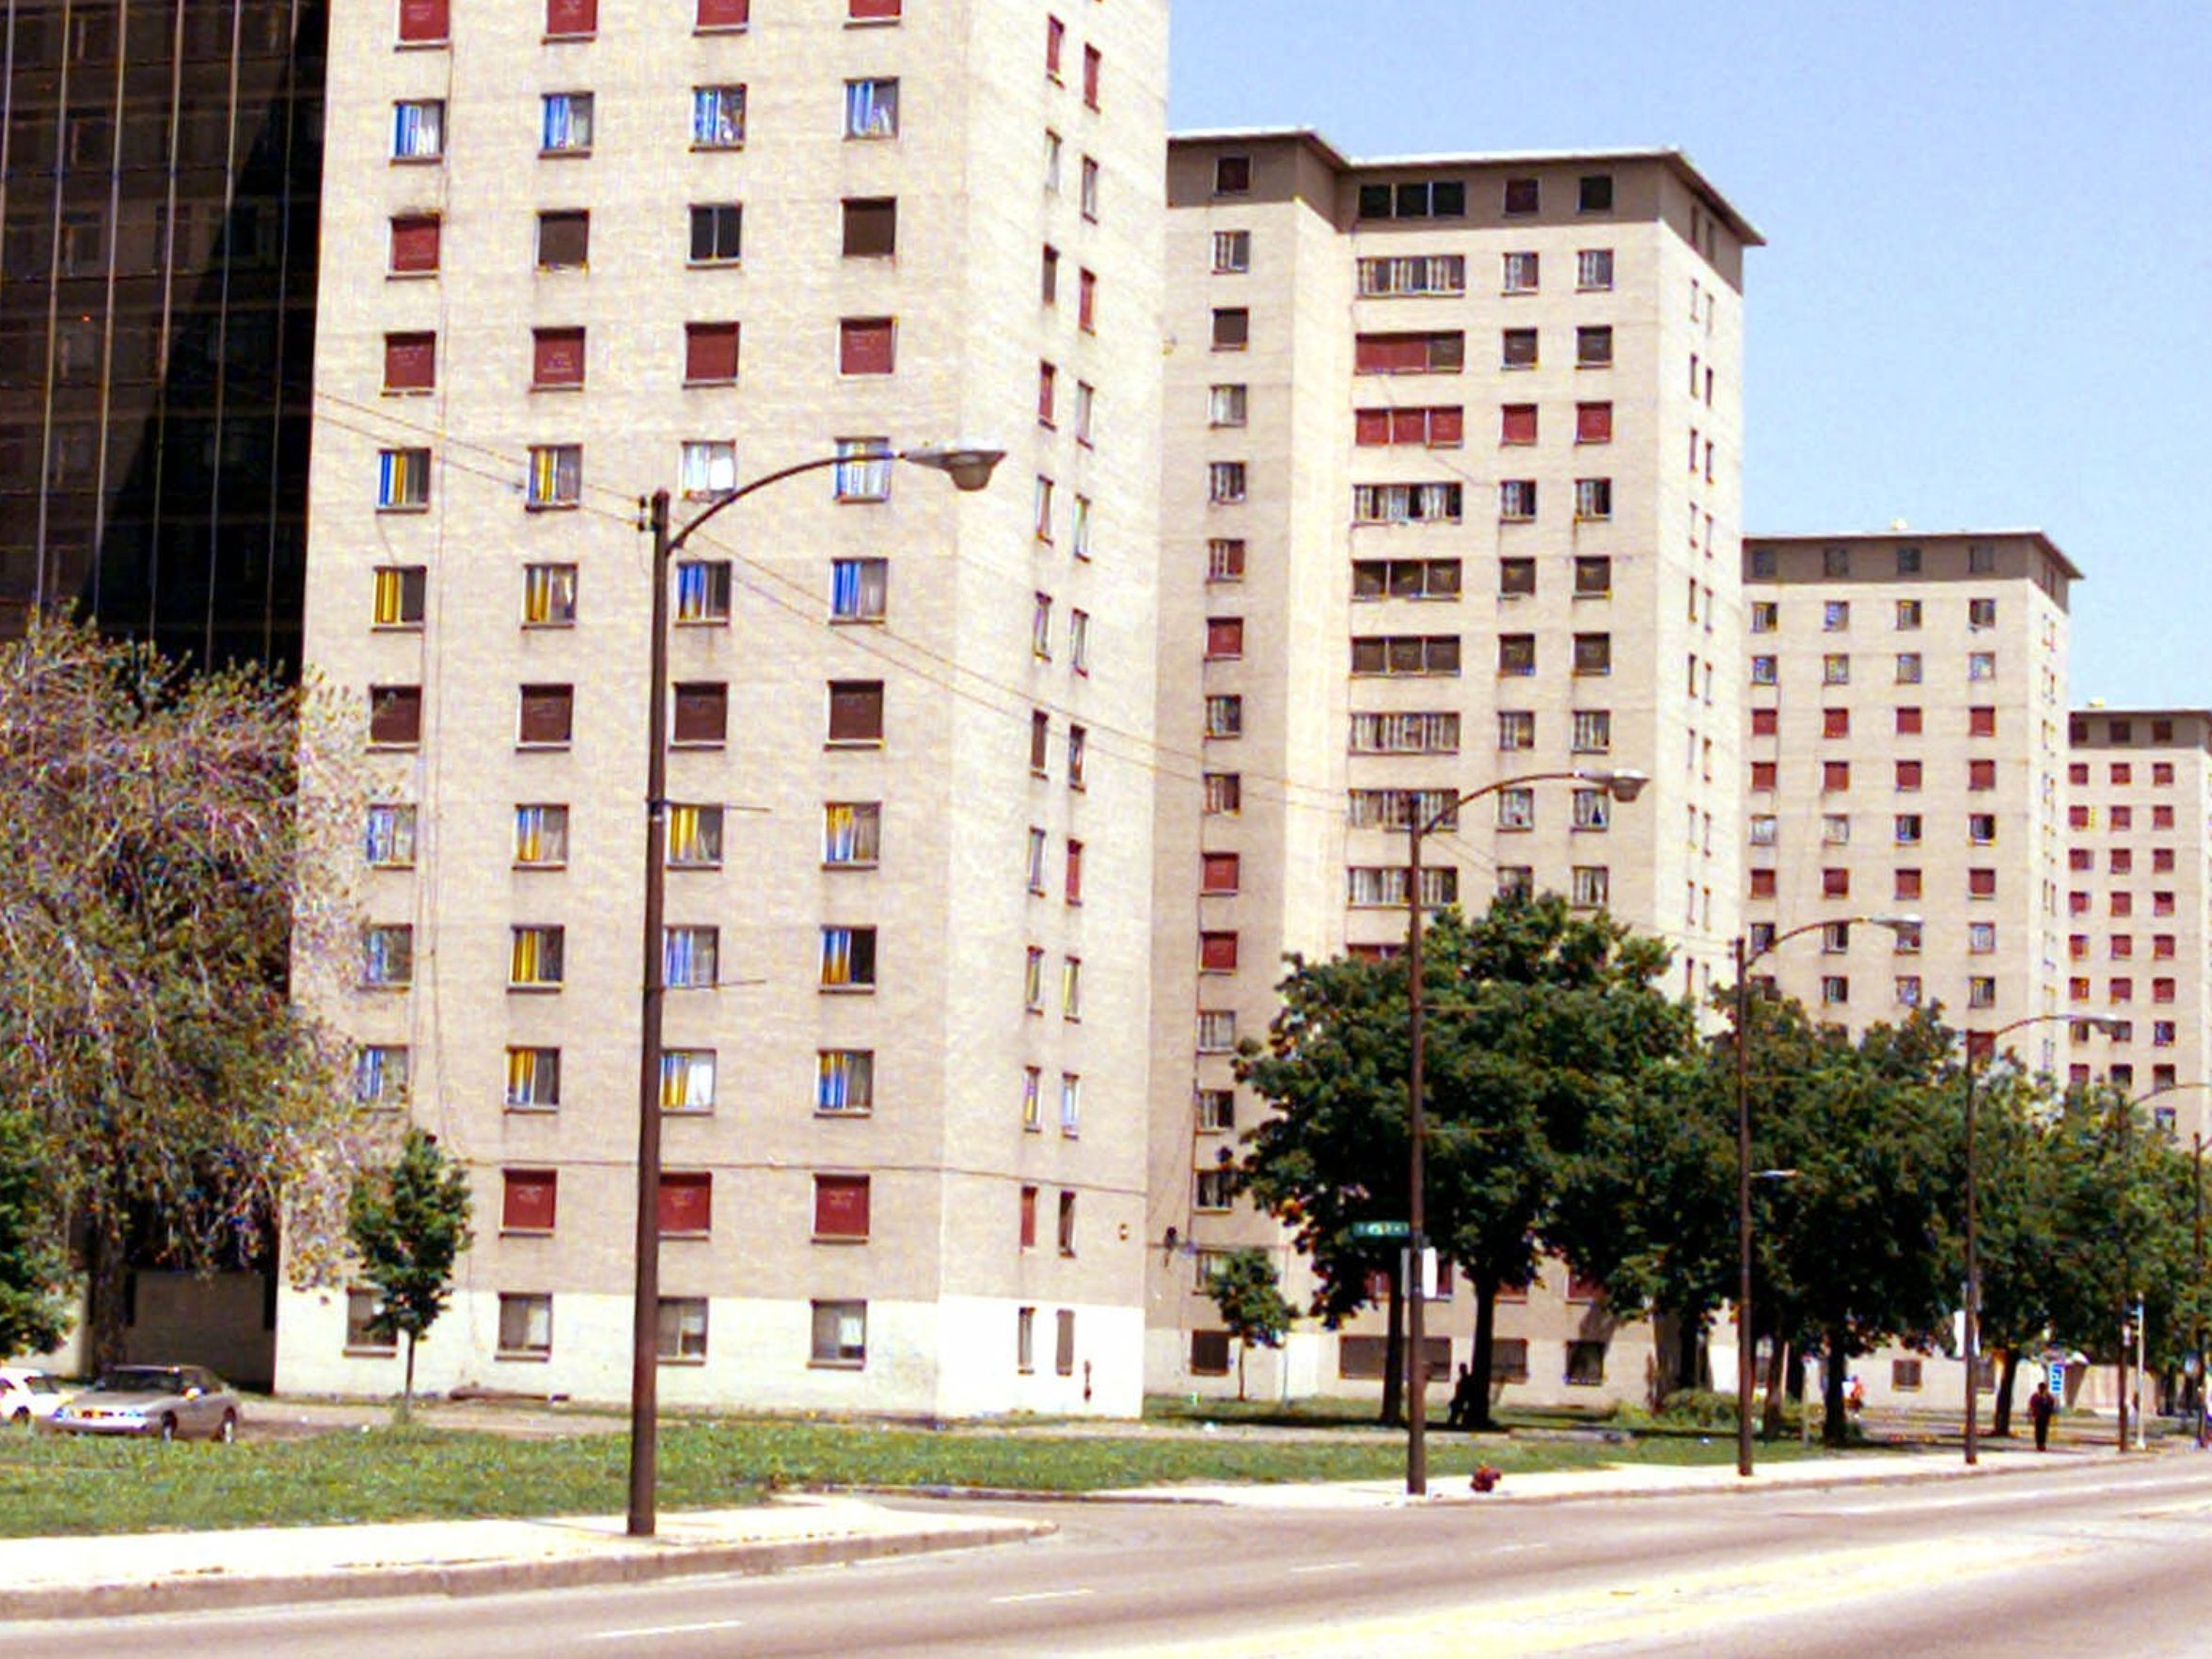 The Robert Taylor Homes In May 1999 Chicago Chicago History Chicago Neighborhoods